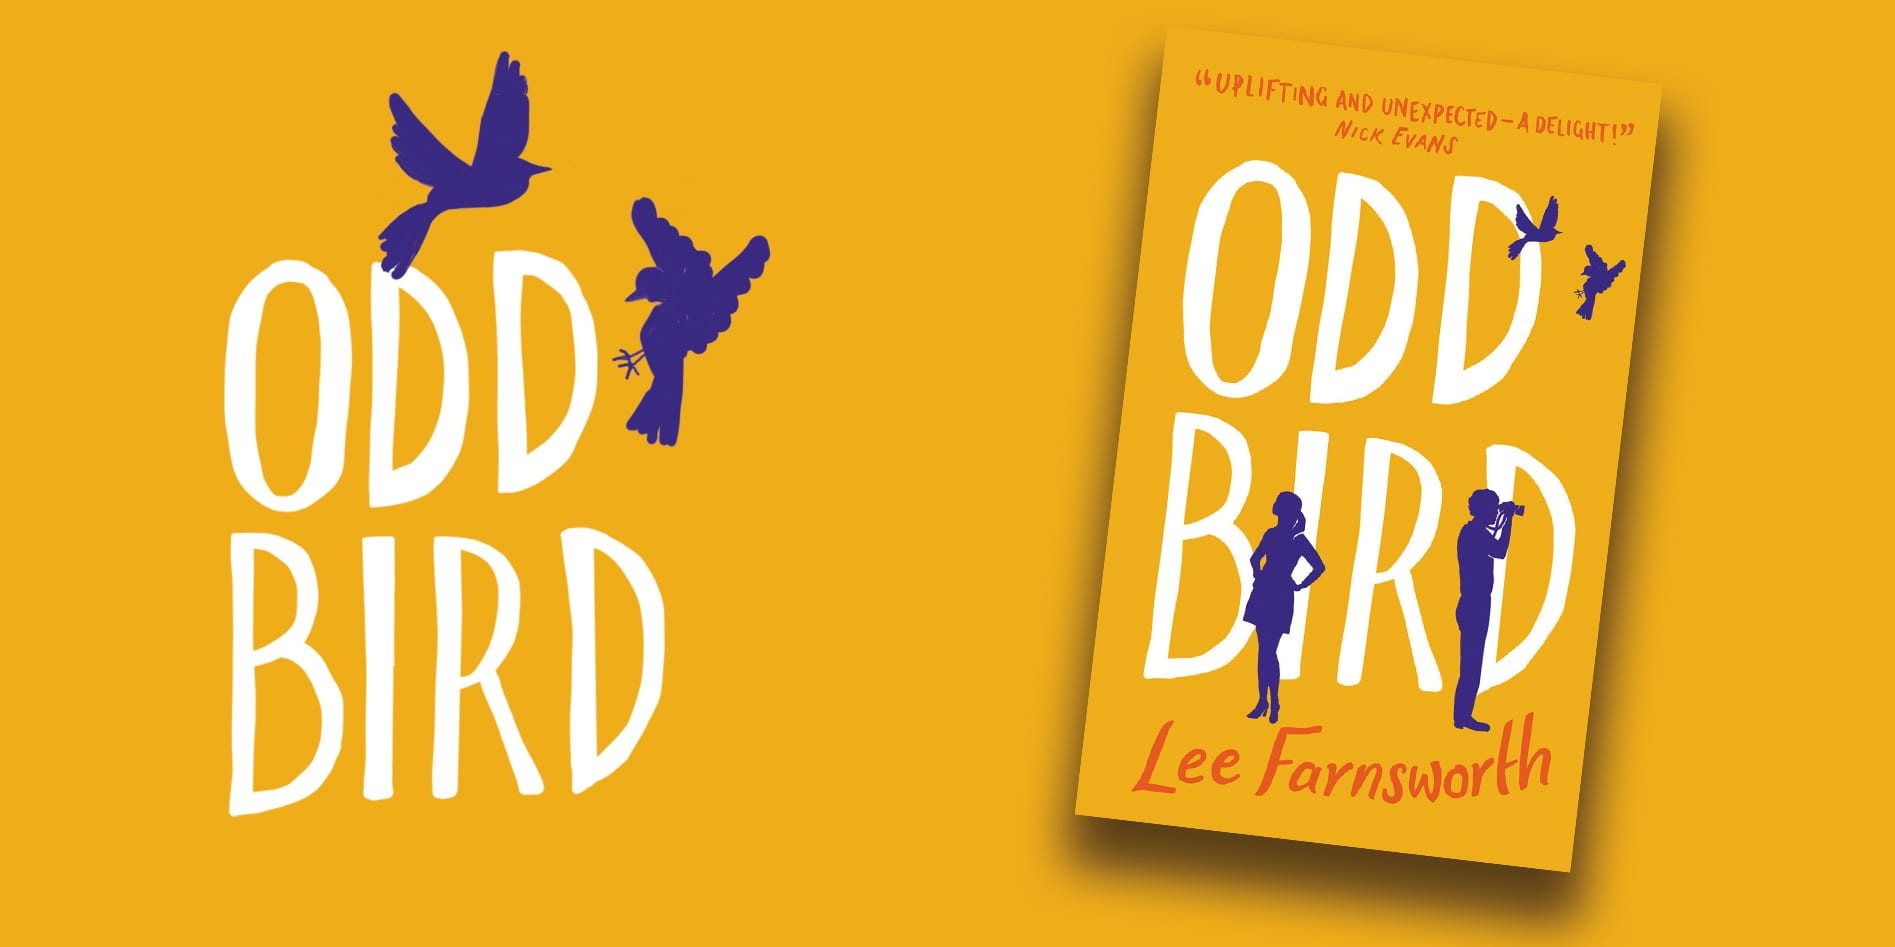 Lee Farnsworth on Writing 'Odd Bird' - Farrago Books